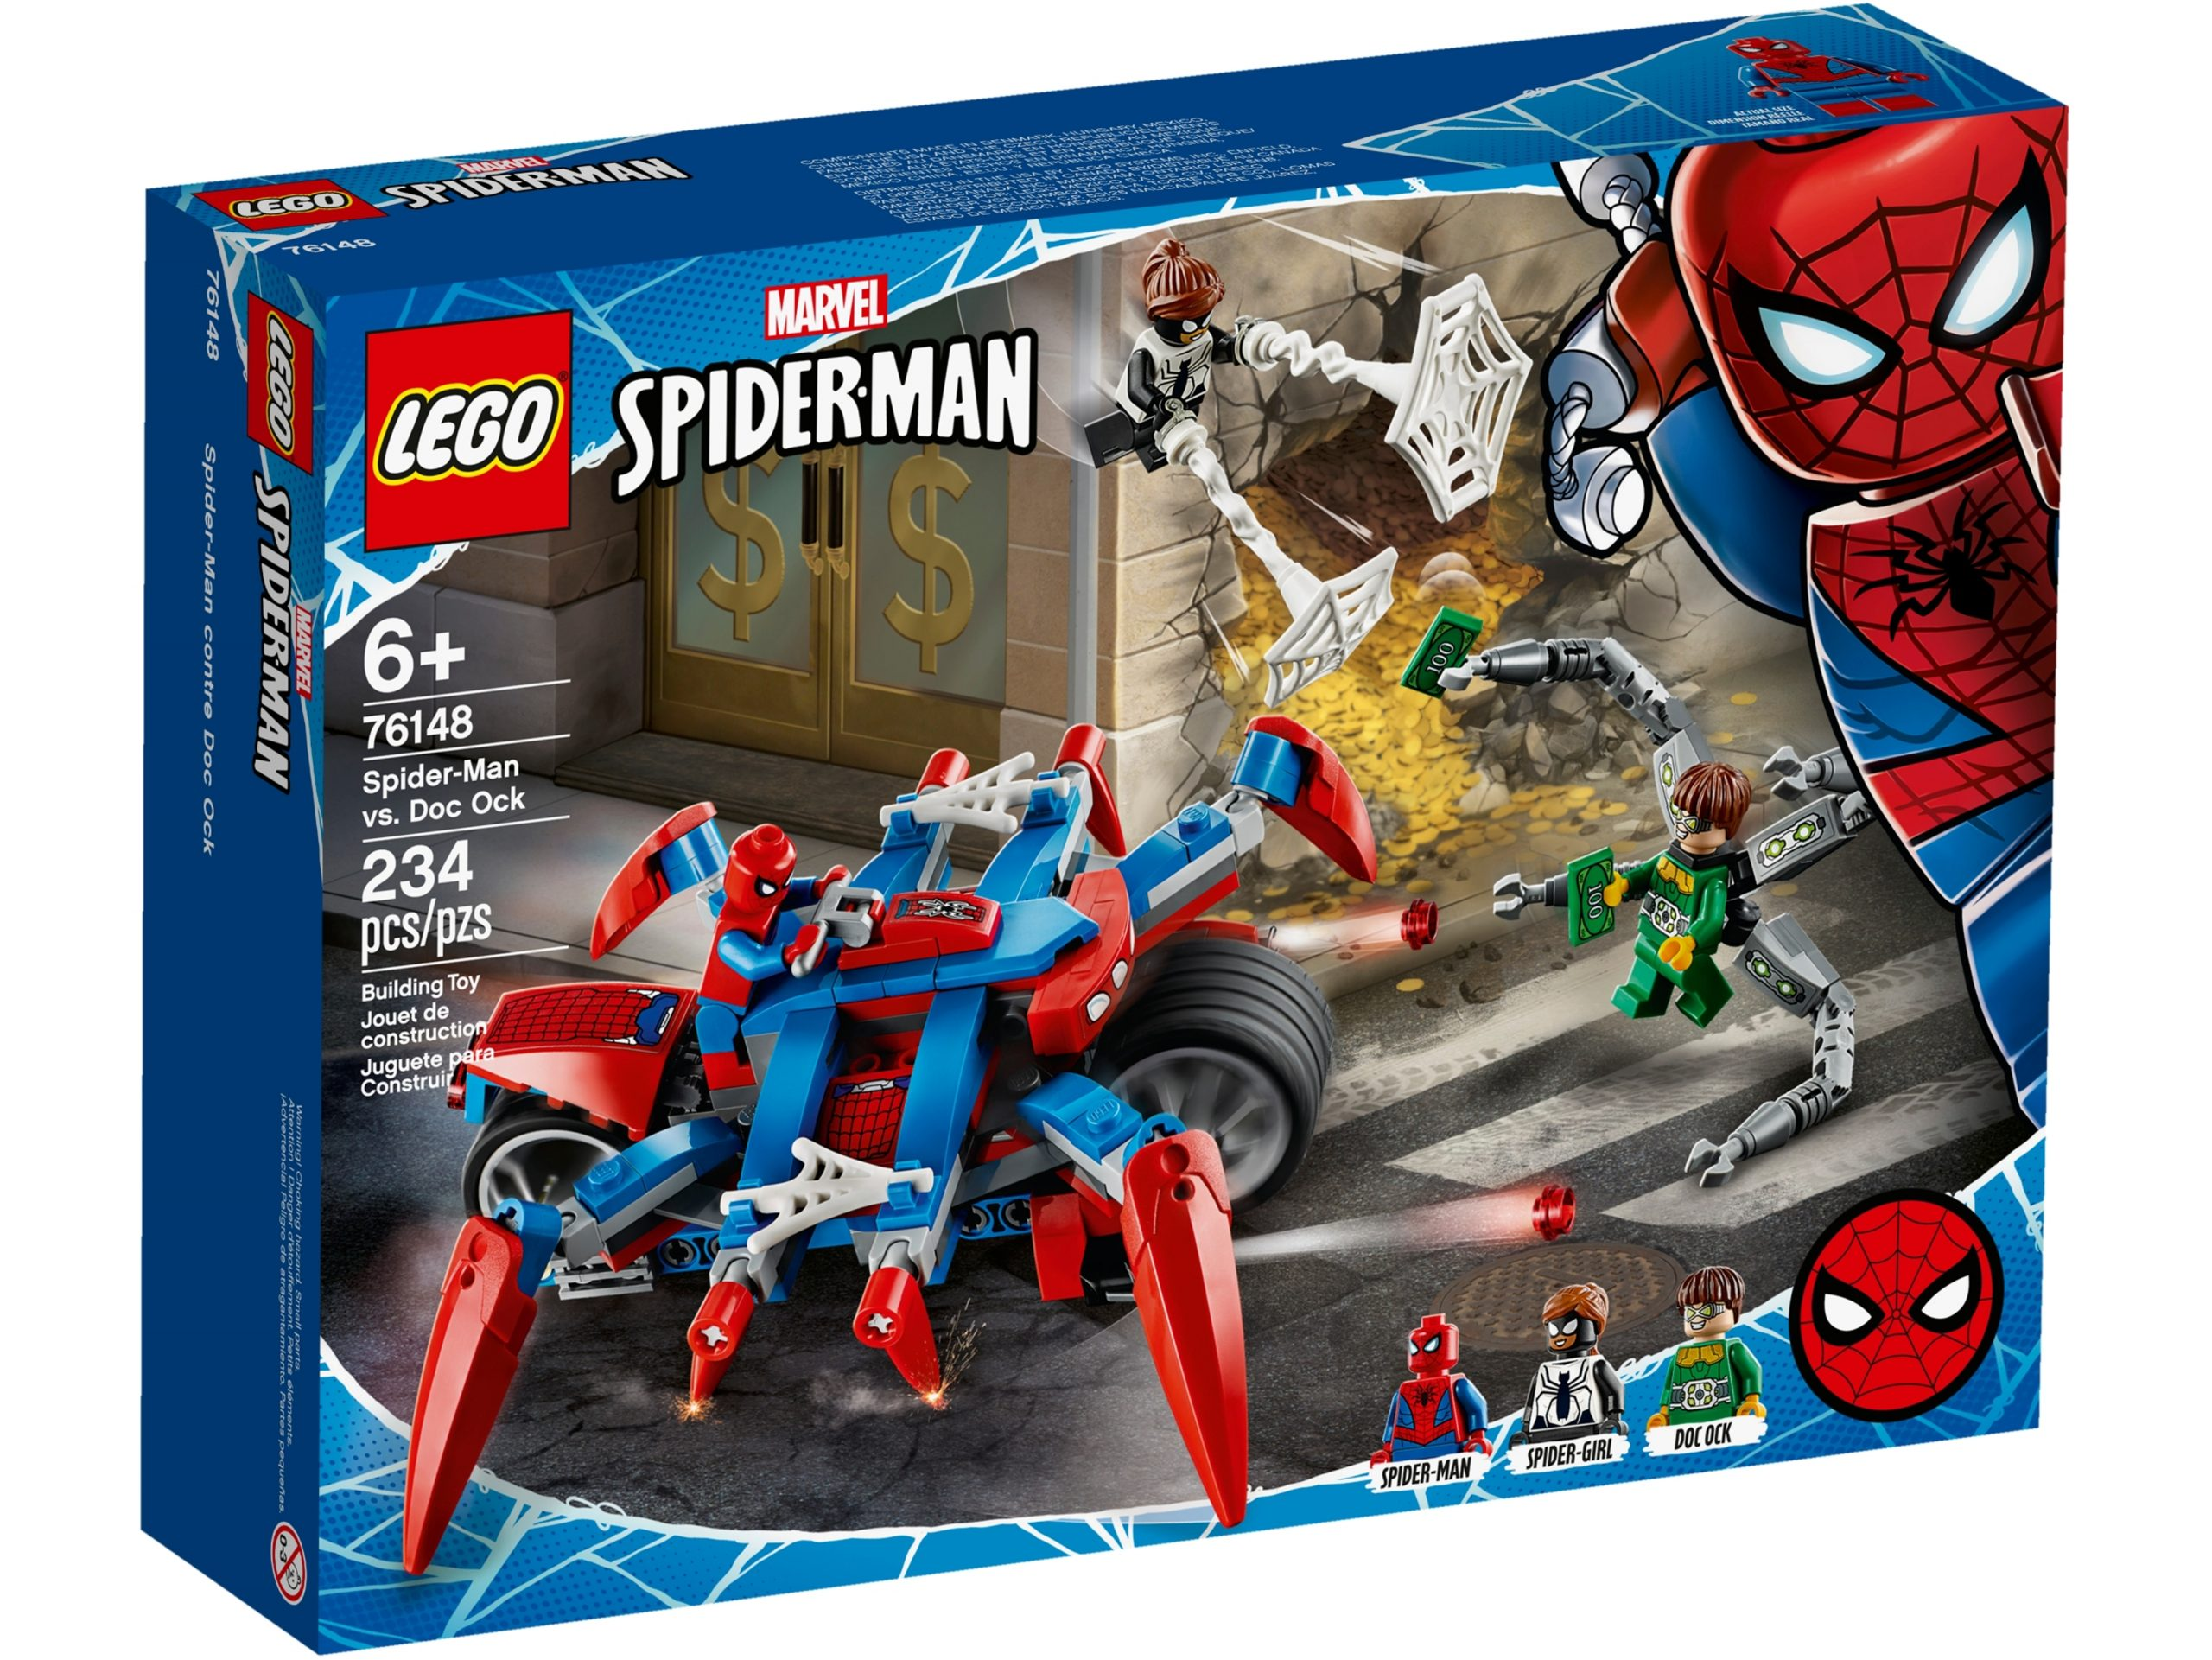 lego 76148 spider man vs doc ock scaled